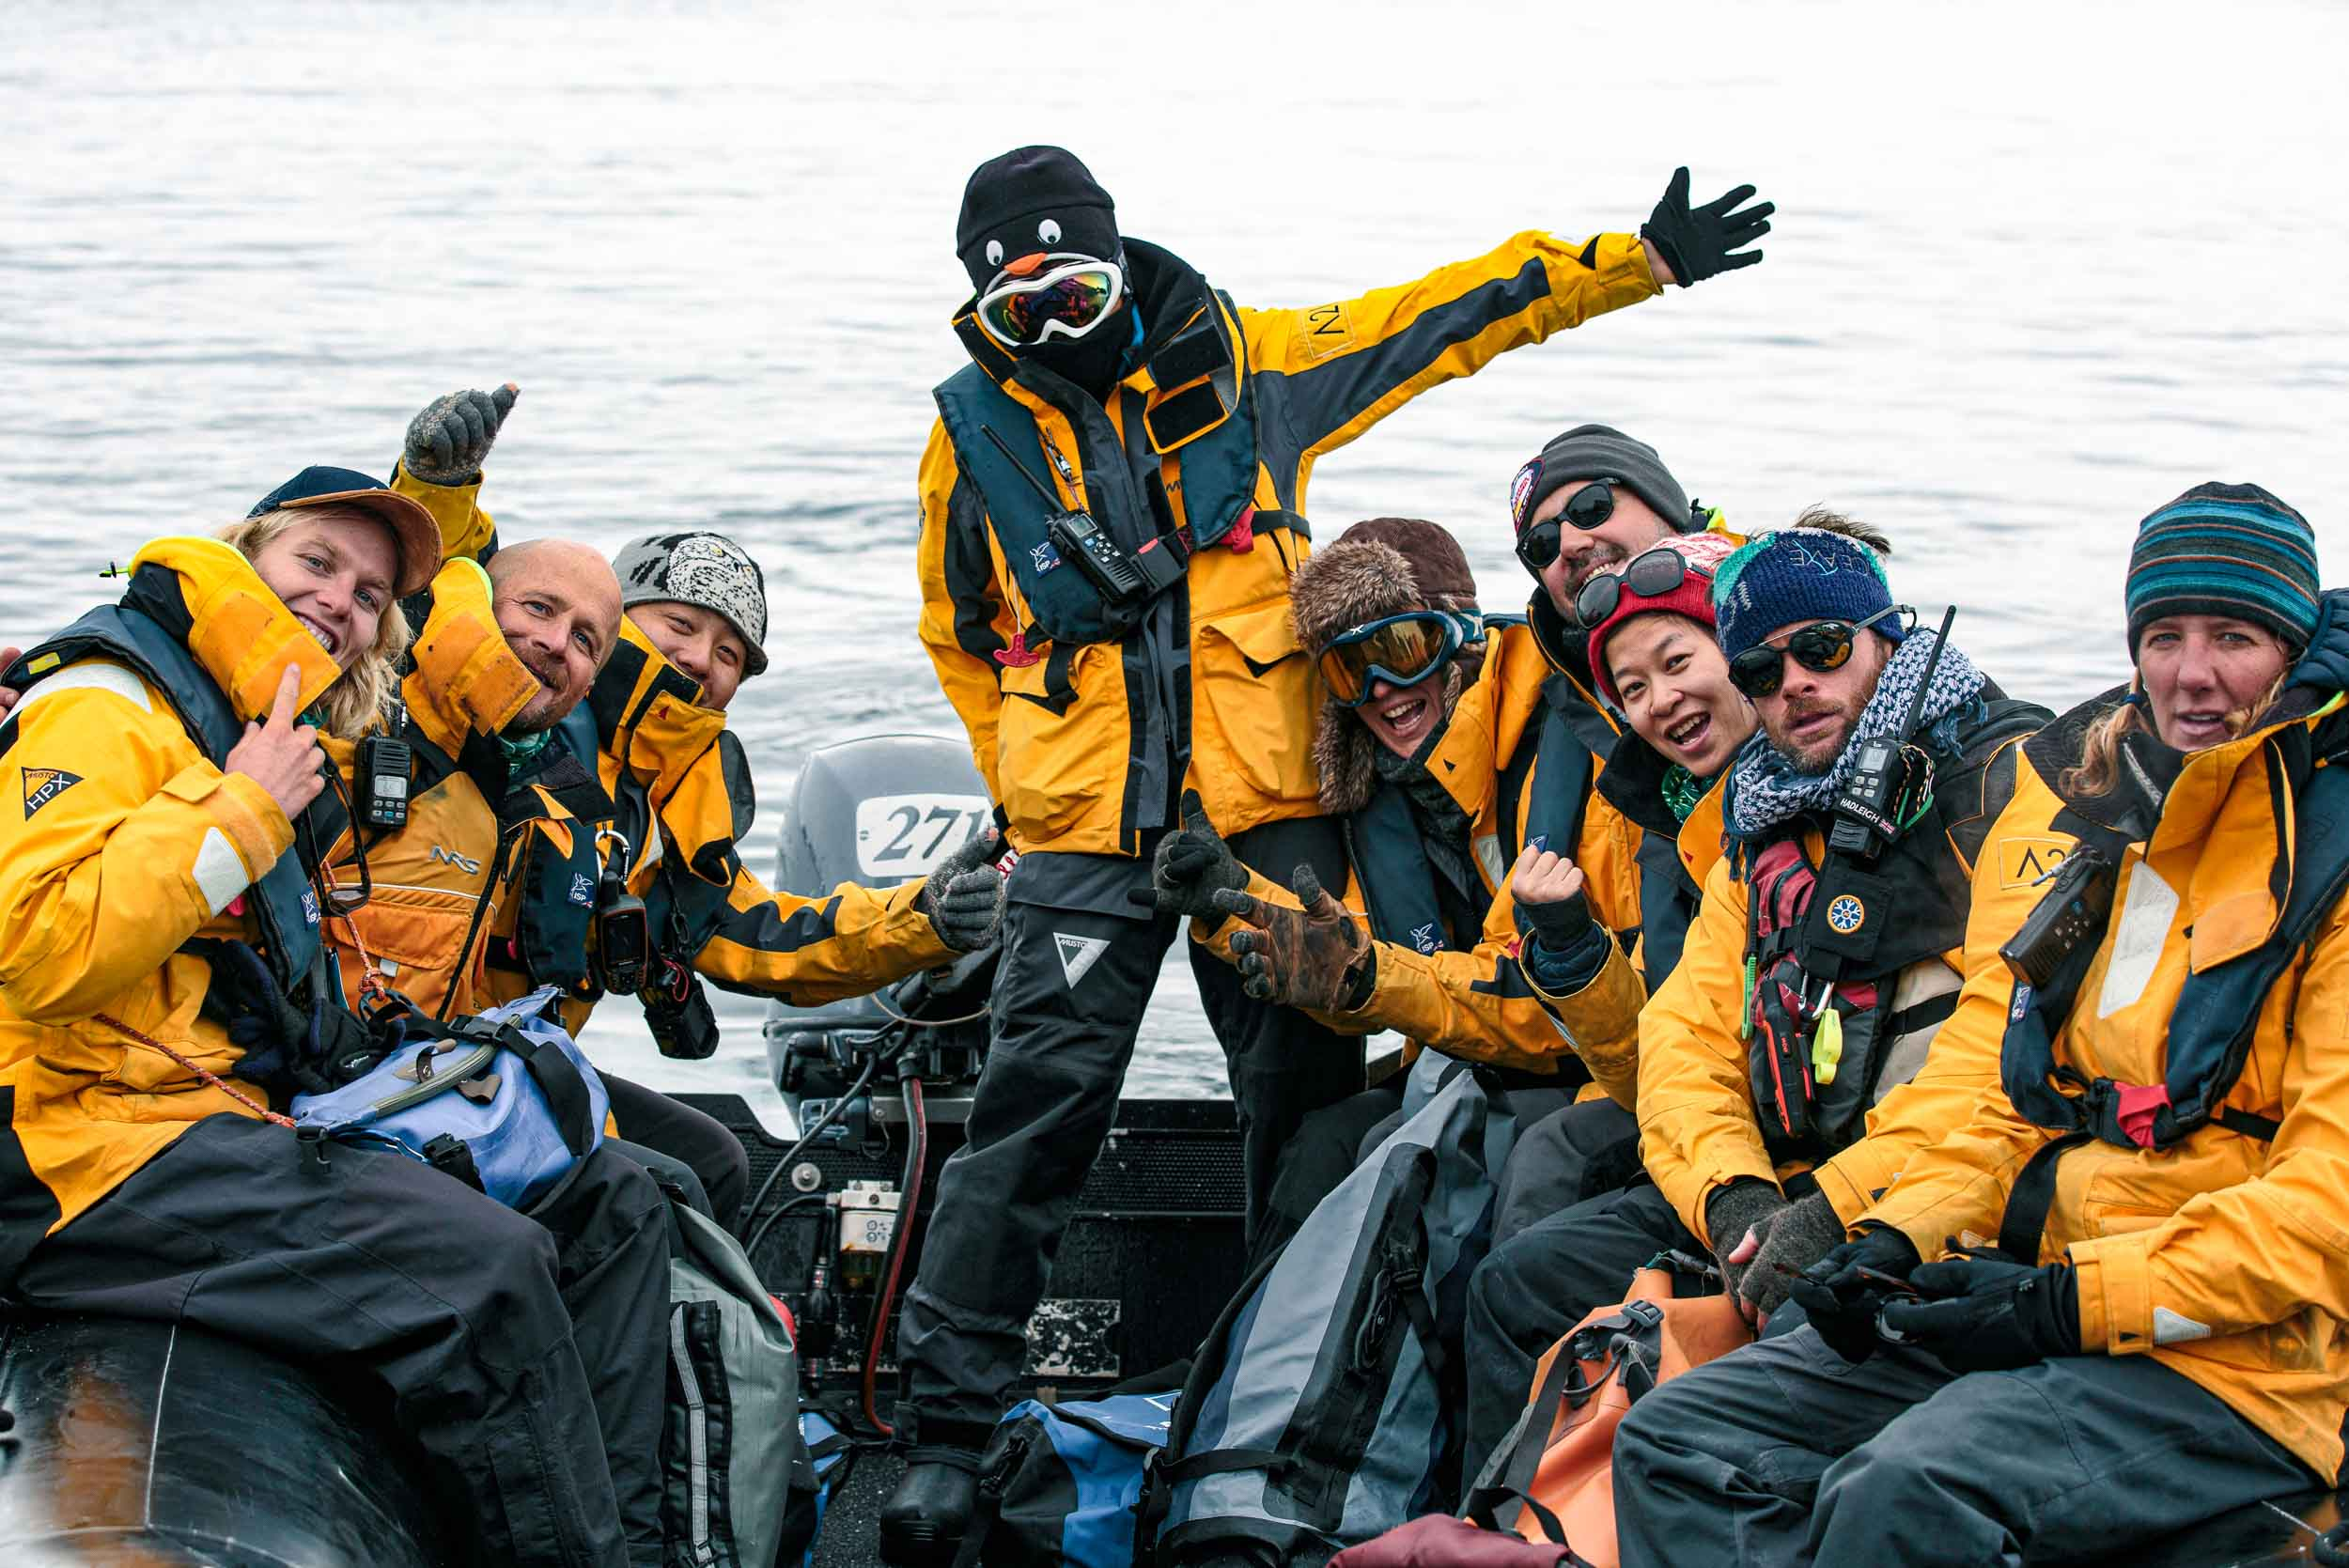 Our expedition team in Antarctica